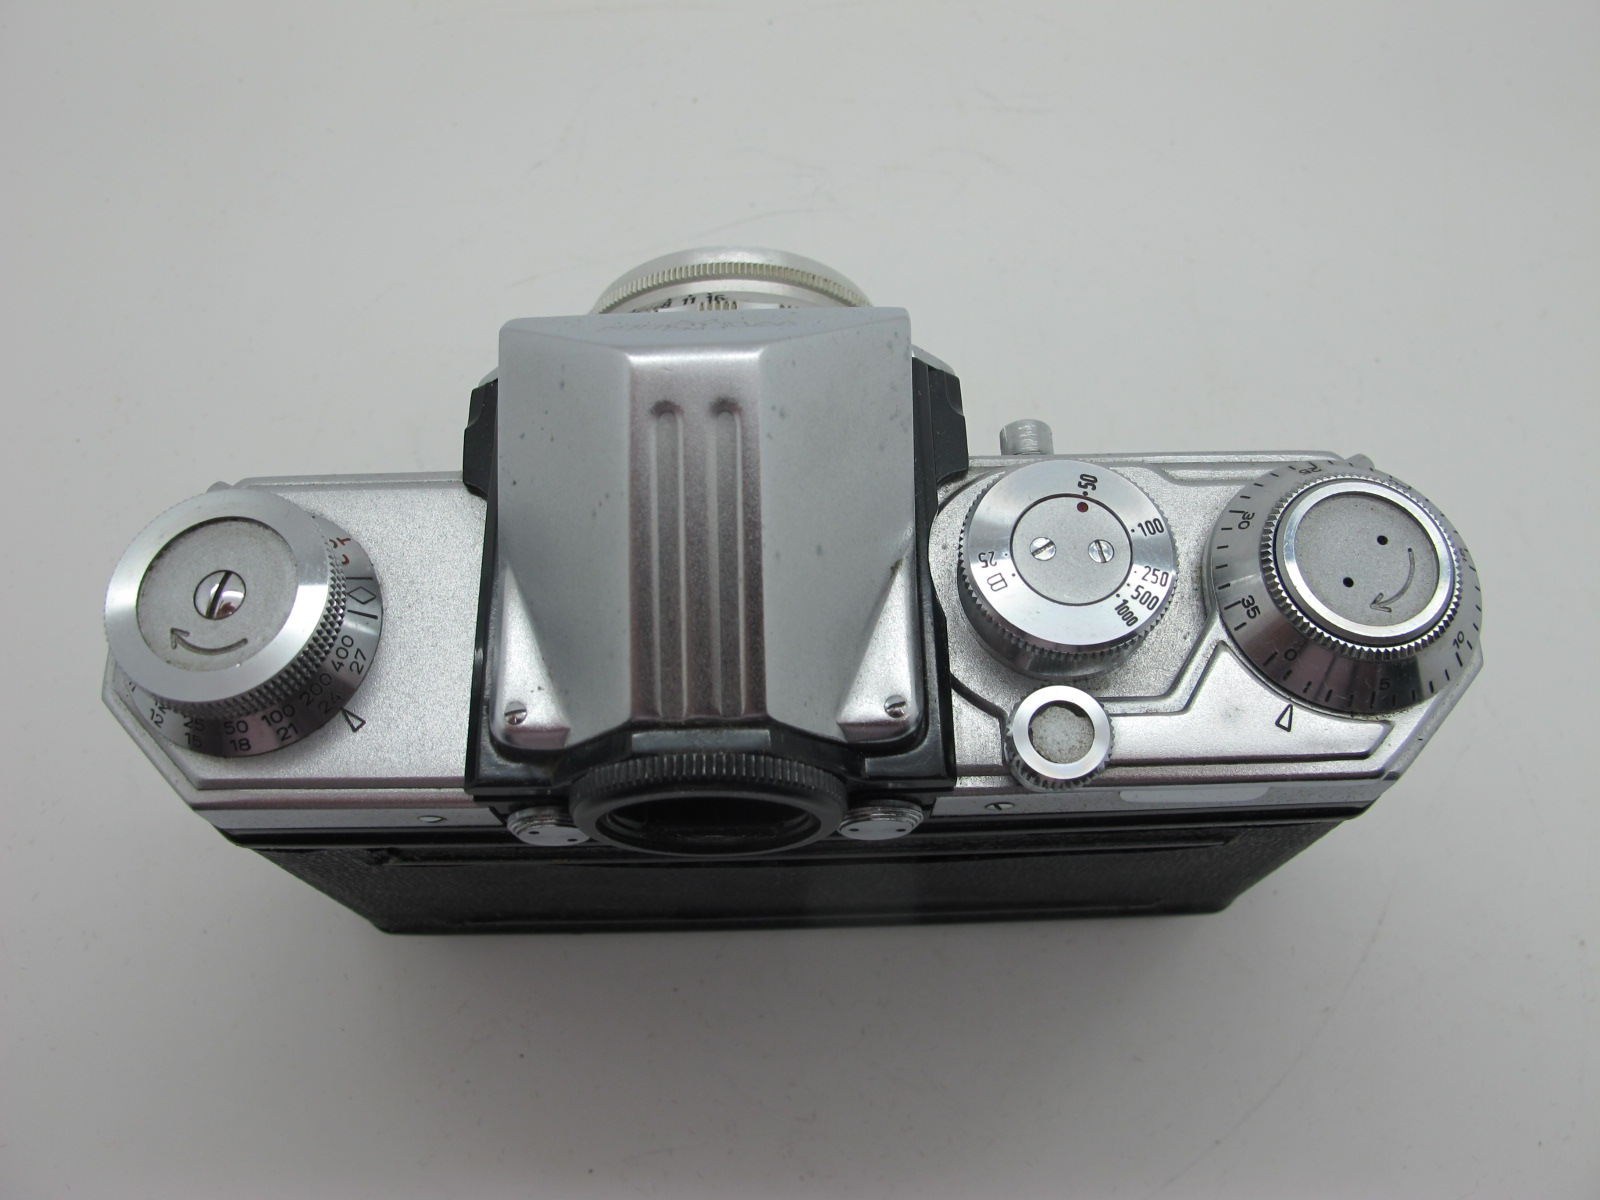 Saraber Goslar Finetta 88, Edika Flex, plus two other camera's in brown leather cases. (4) - Image 6 of 13